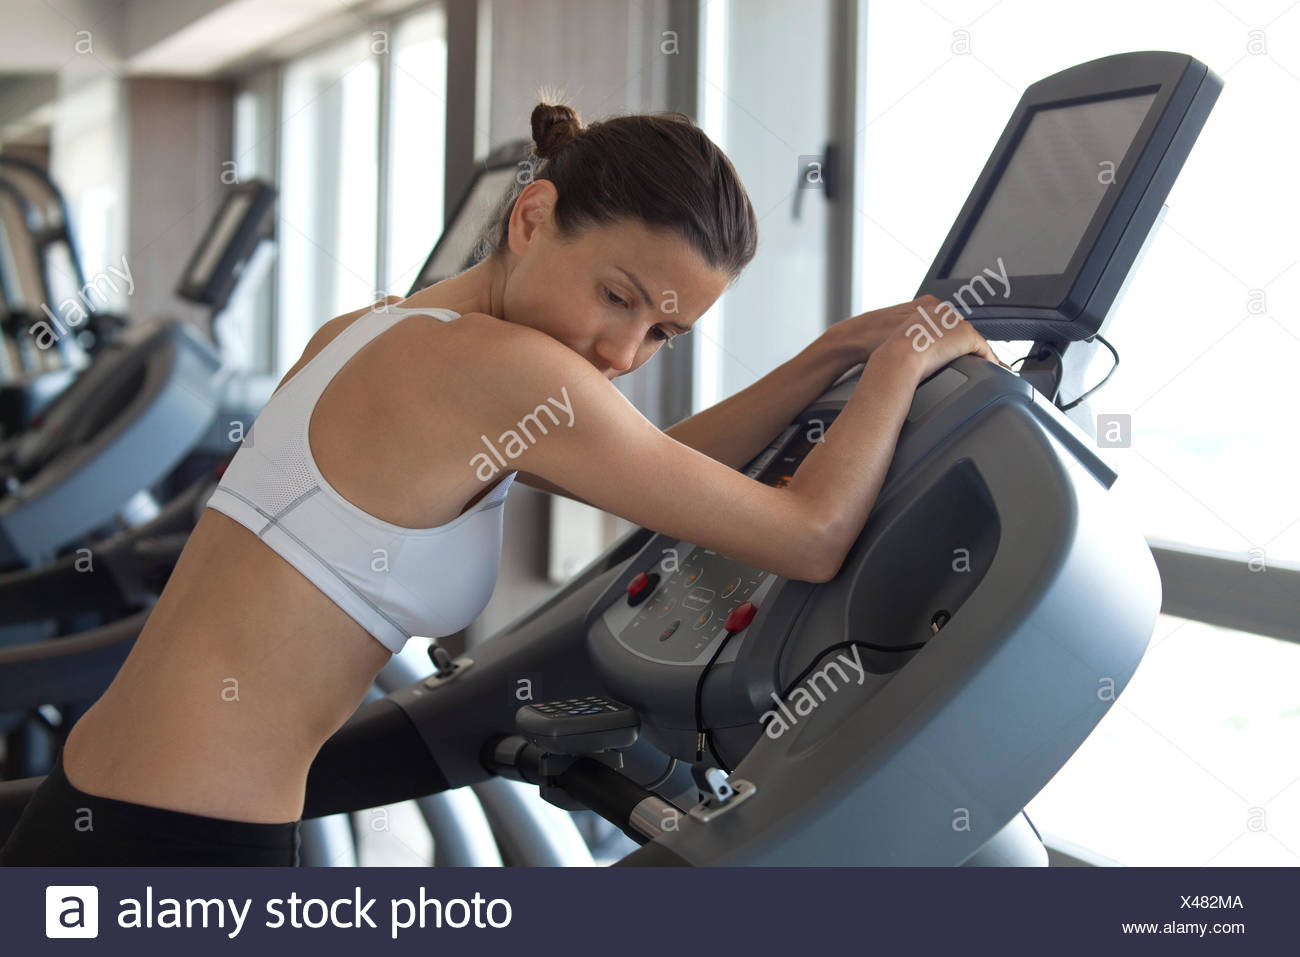 Woman using exercise machine in health club - Stock Image